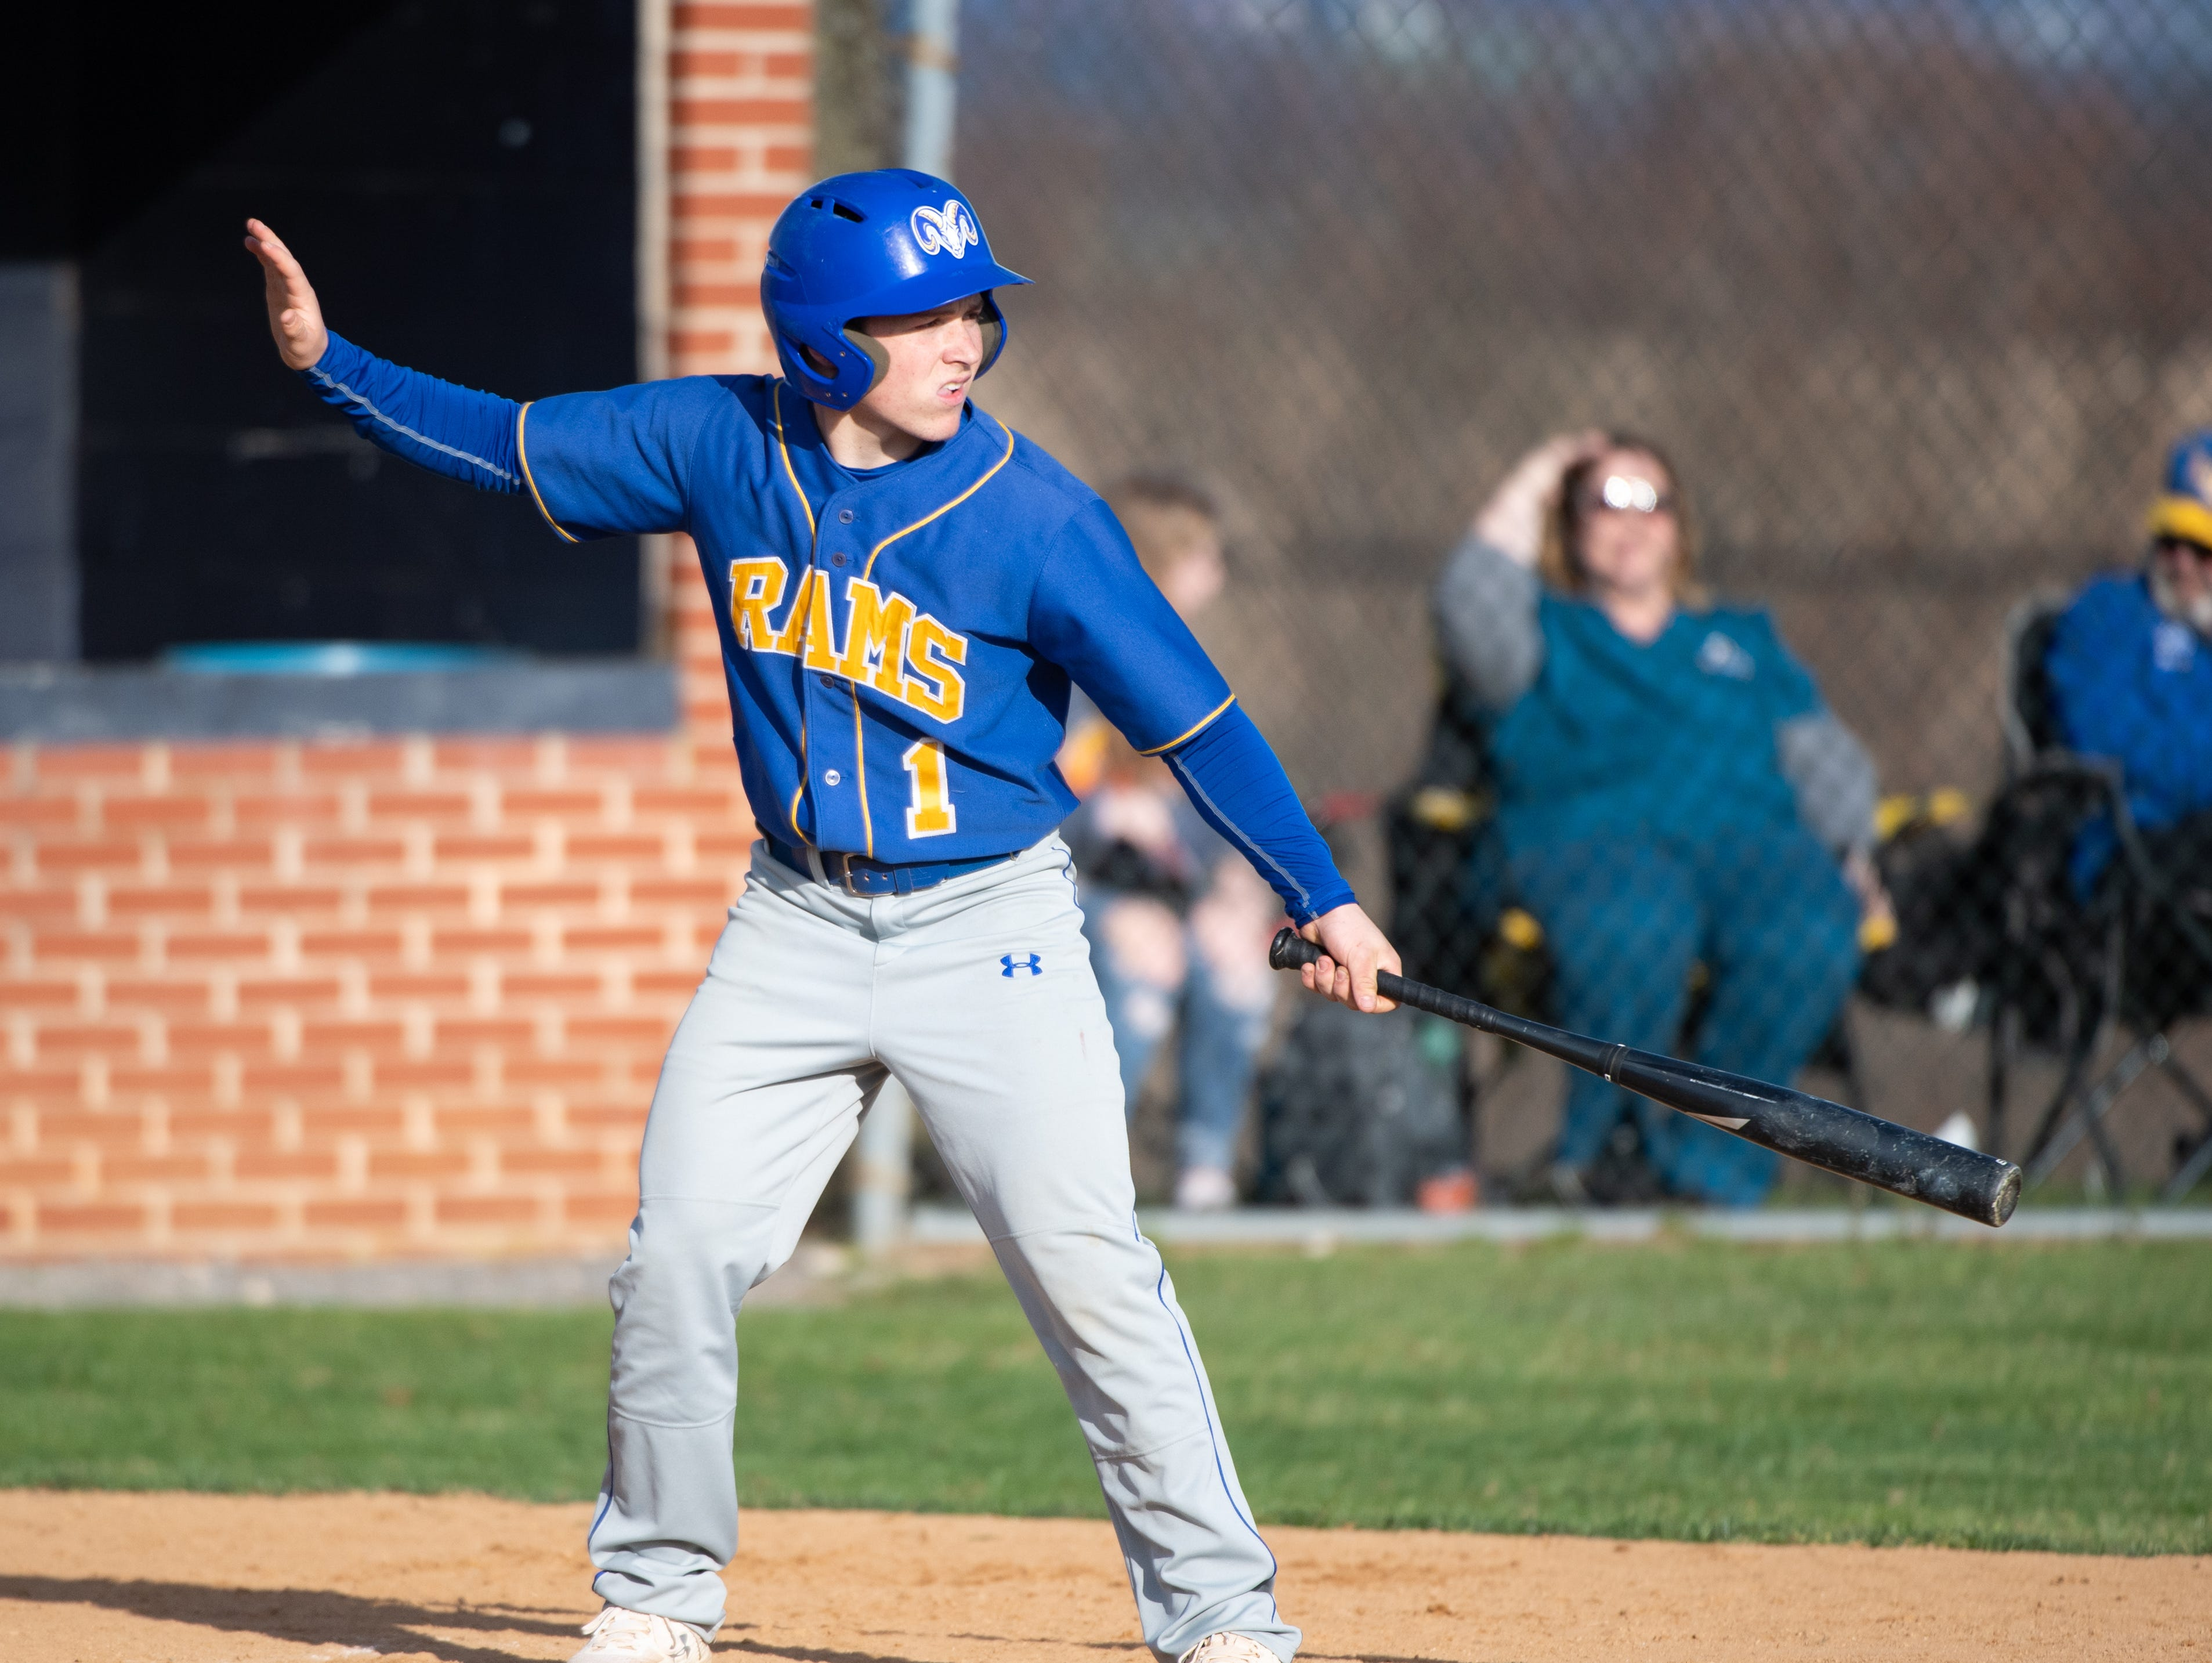 Max Cooper (1) prepares to bat during the baseball game between Eastern York and Kennard-Dale, April 10, 2019 at Eastern York High School. The Golden Knights defeated the Rams 8 to 1.